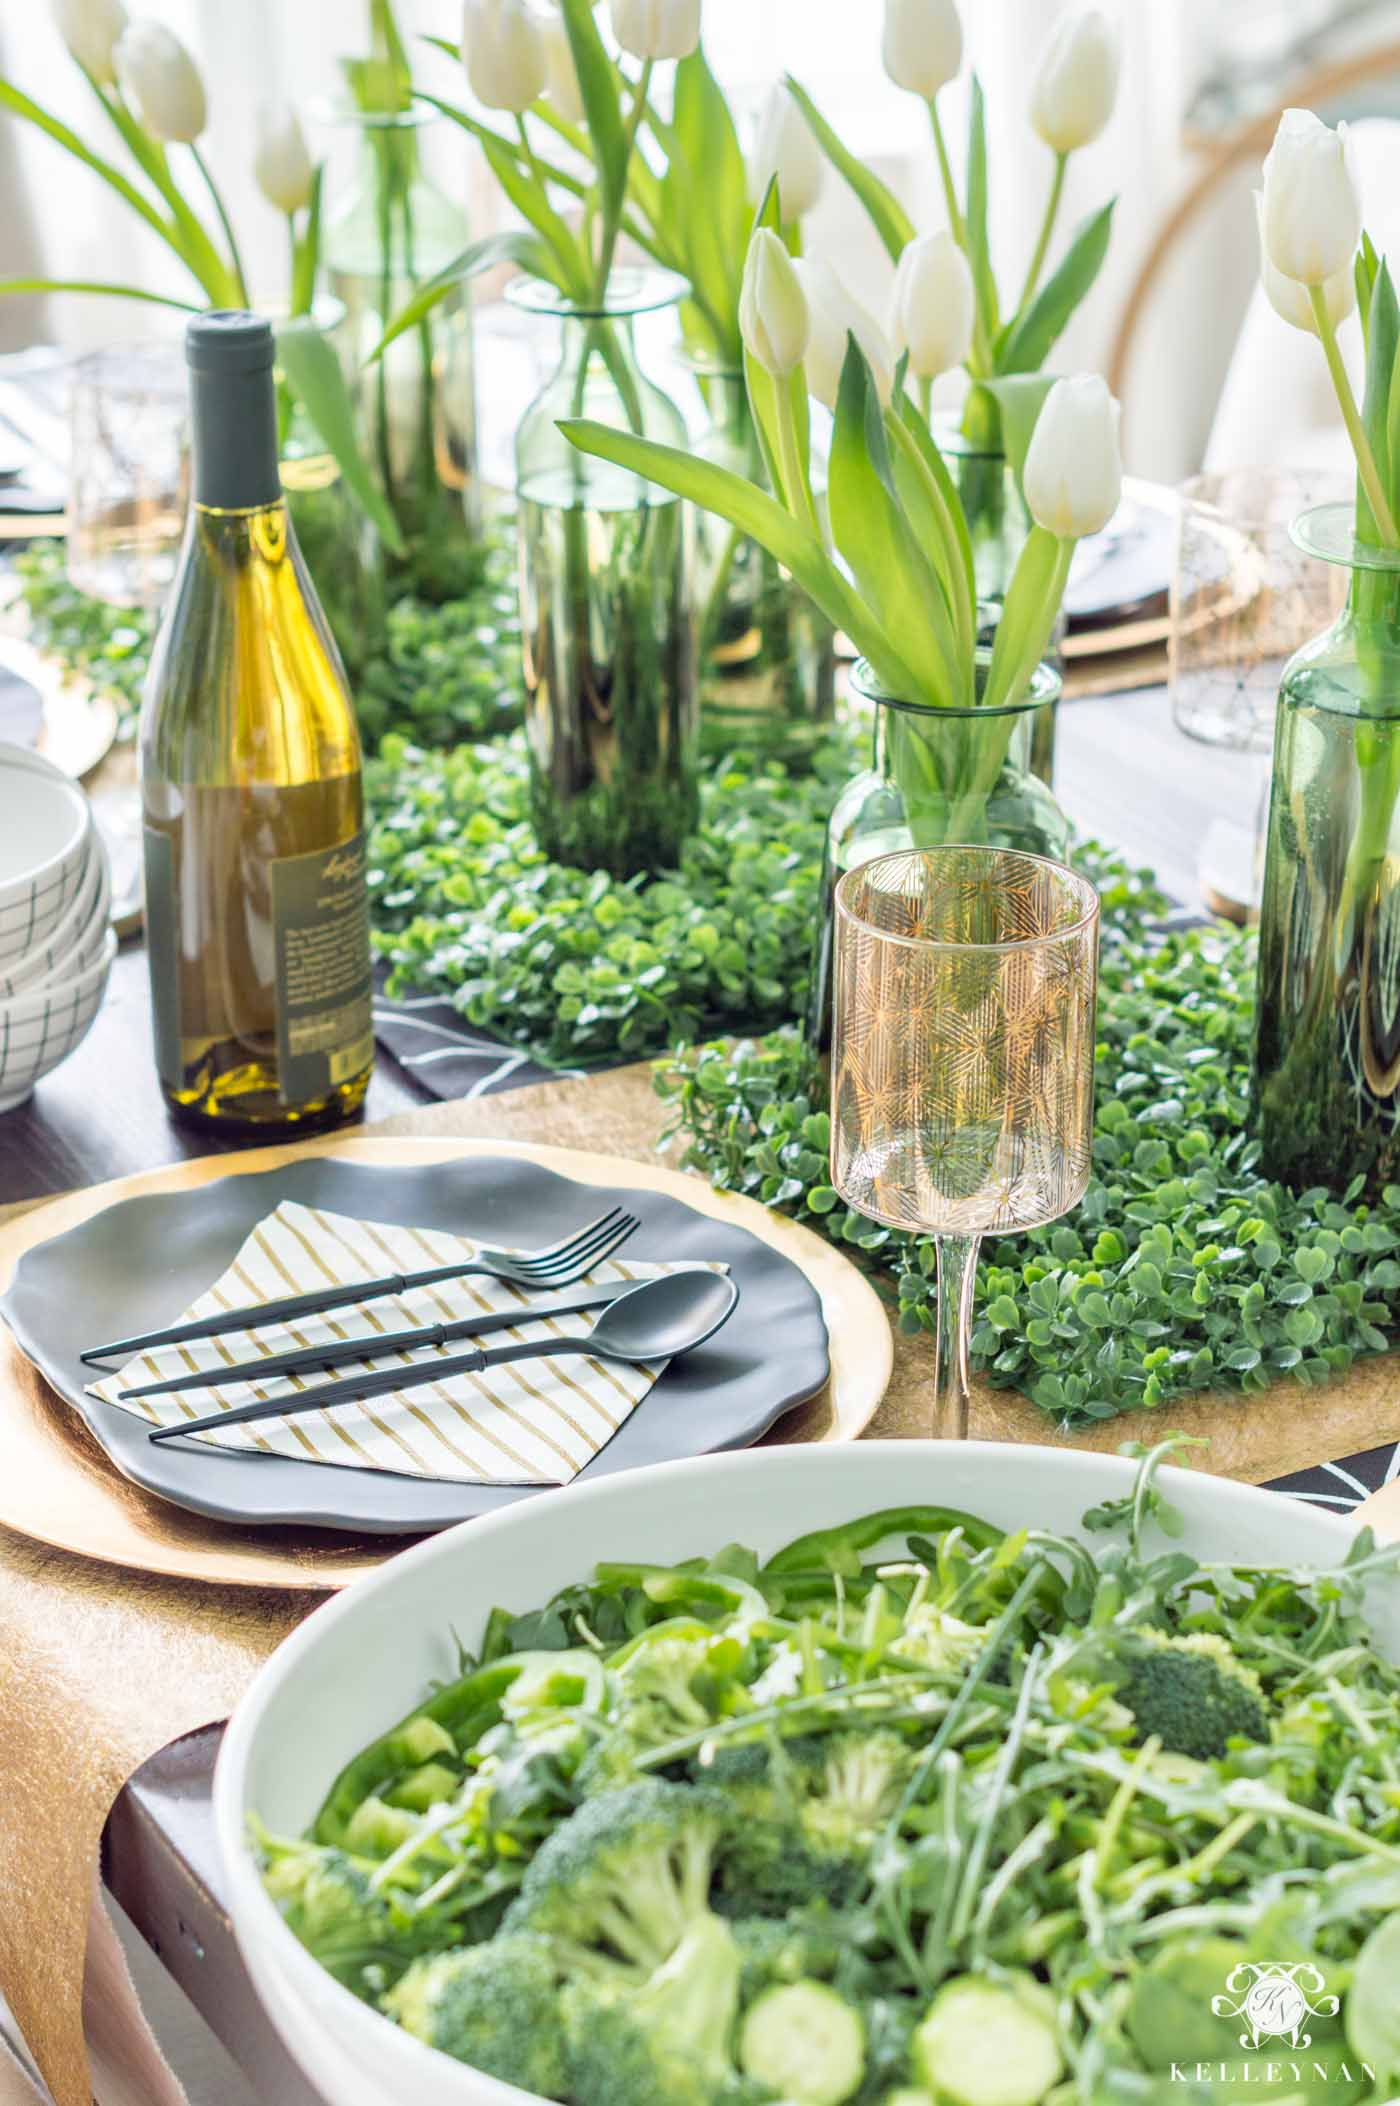 St. Patrick's Day Table Decor with Green Shamrock Centerpiece